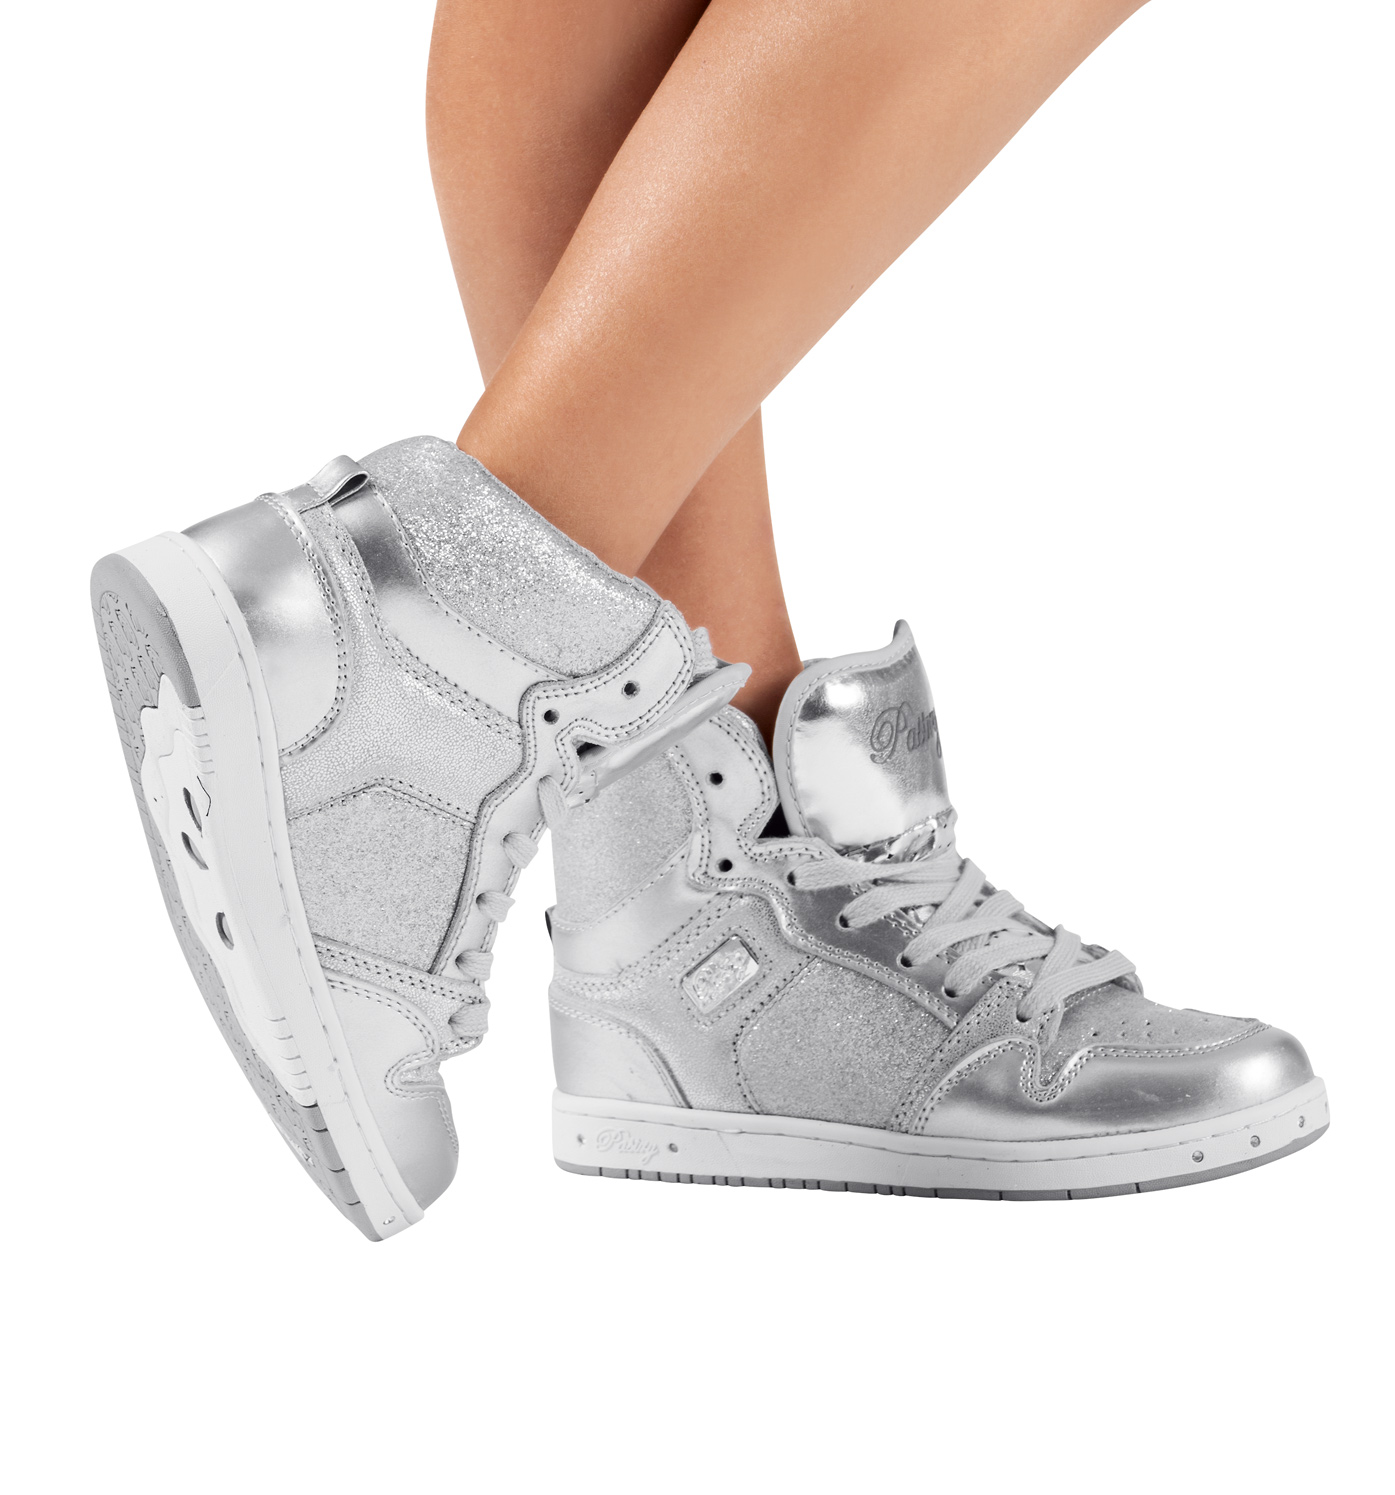 """Pastry Adult """"Glam Pie"""" Glitter Silver Sneakers"""